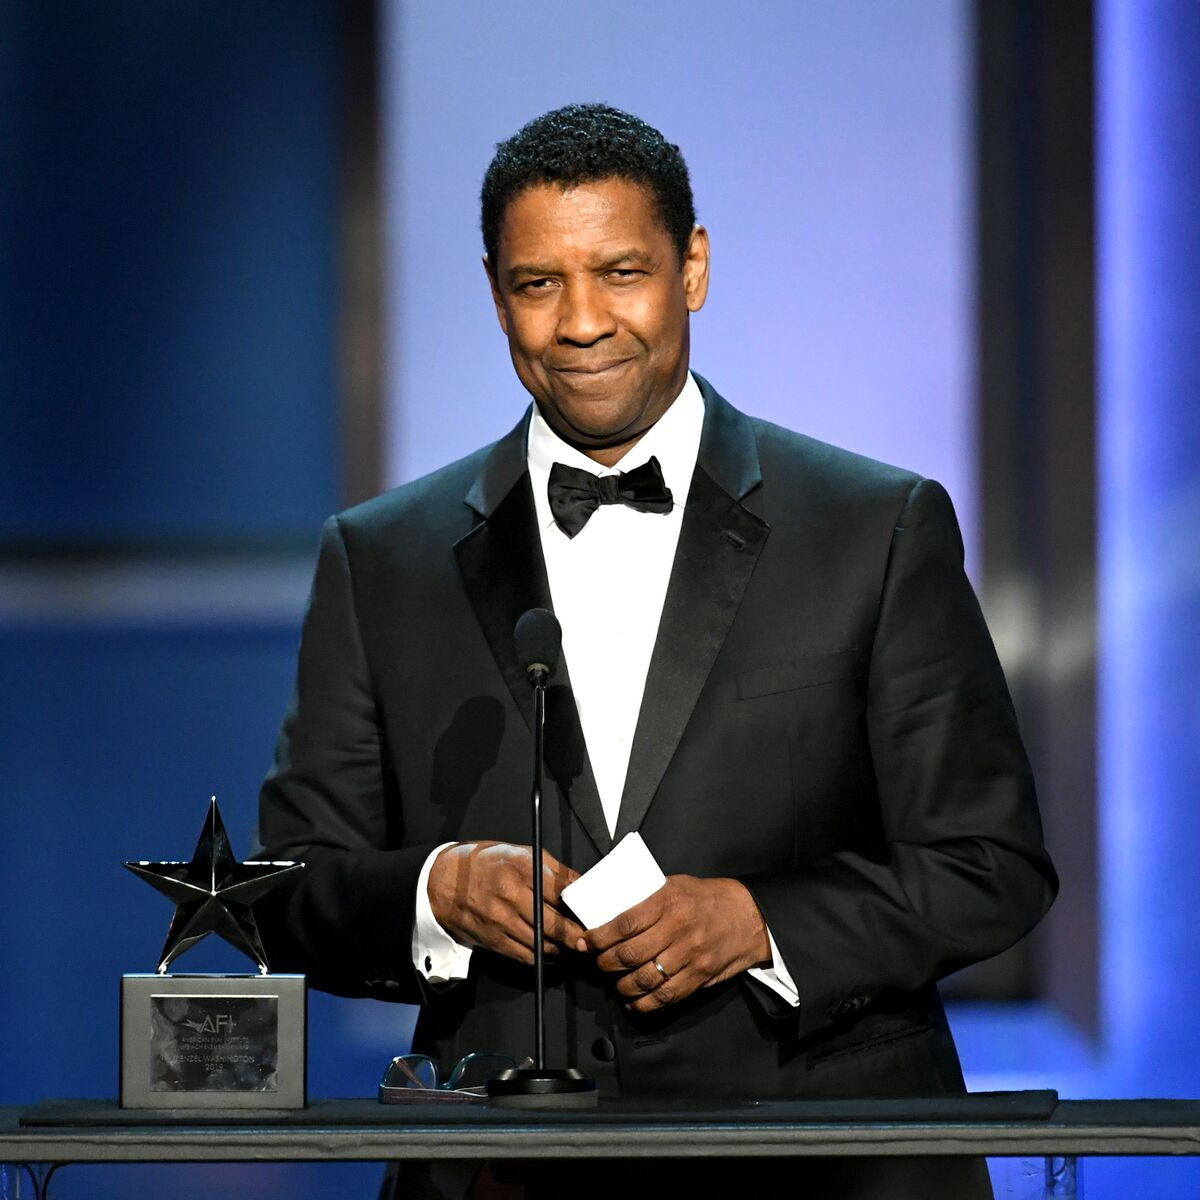 Denzel Washington at the 47th AFI Life Achievement Award on June 06, 2019, in Hollywood, California | Photo: Kevin Winter/Getty Images